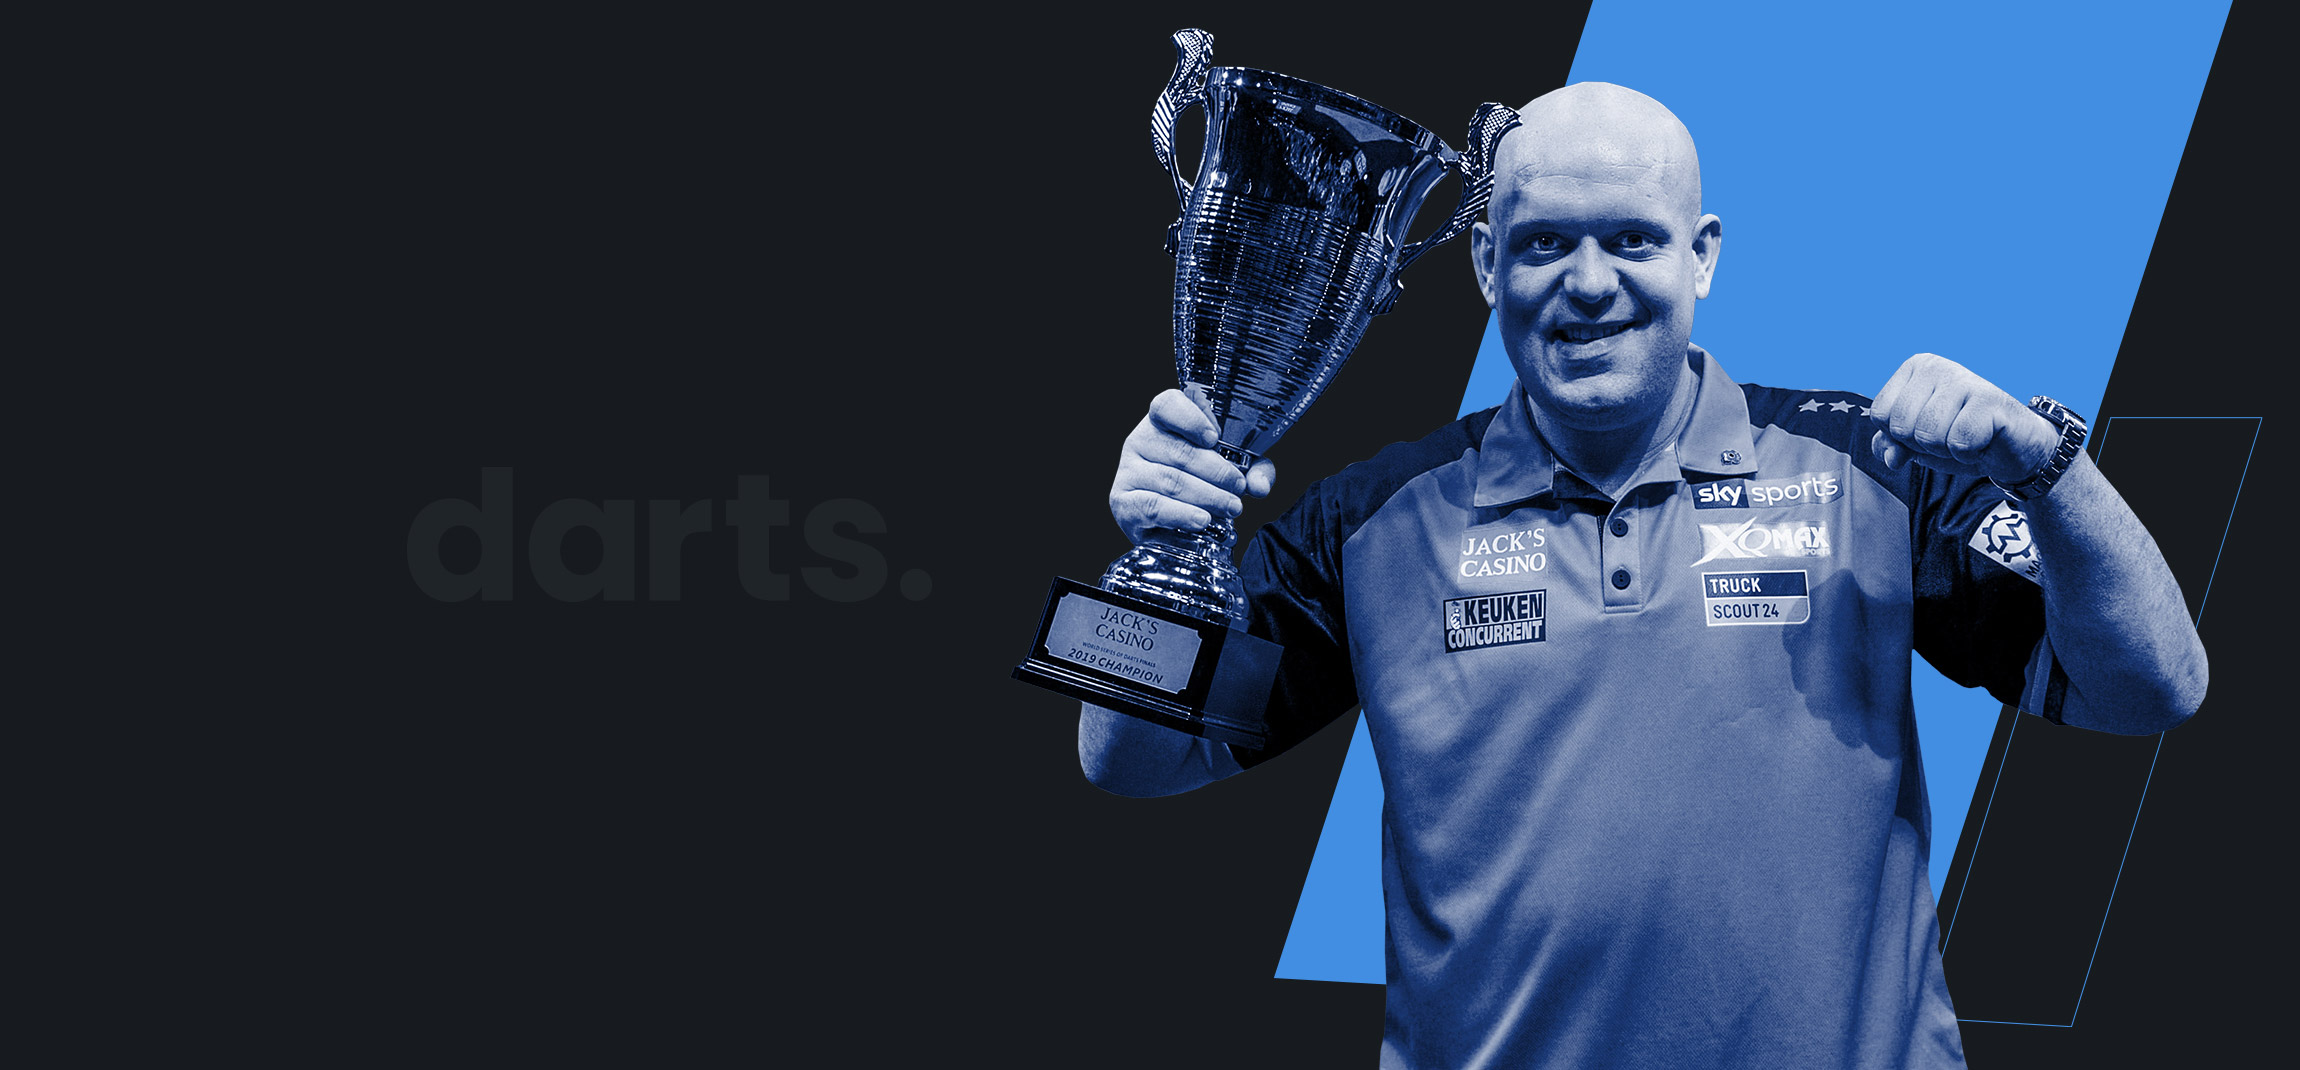 We are Matchroom Sport - We are Grand Slam of Darts